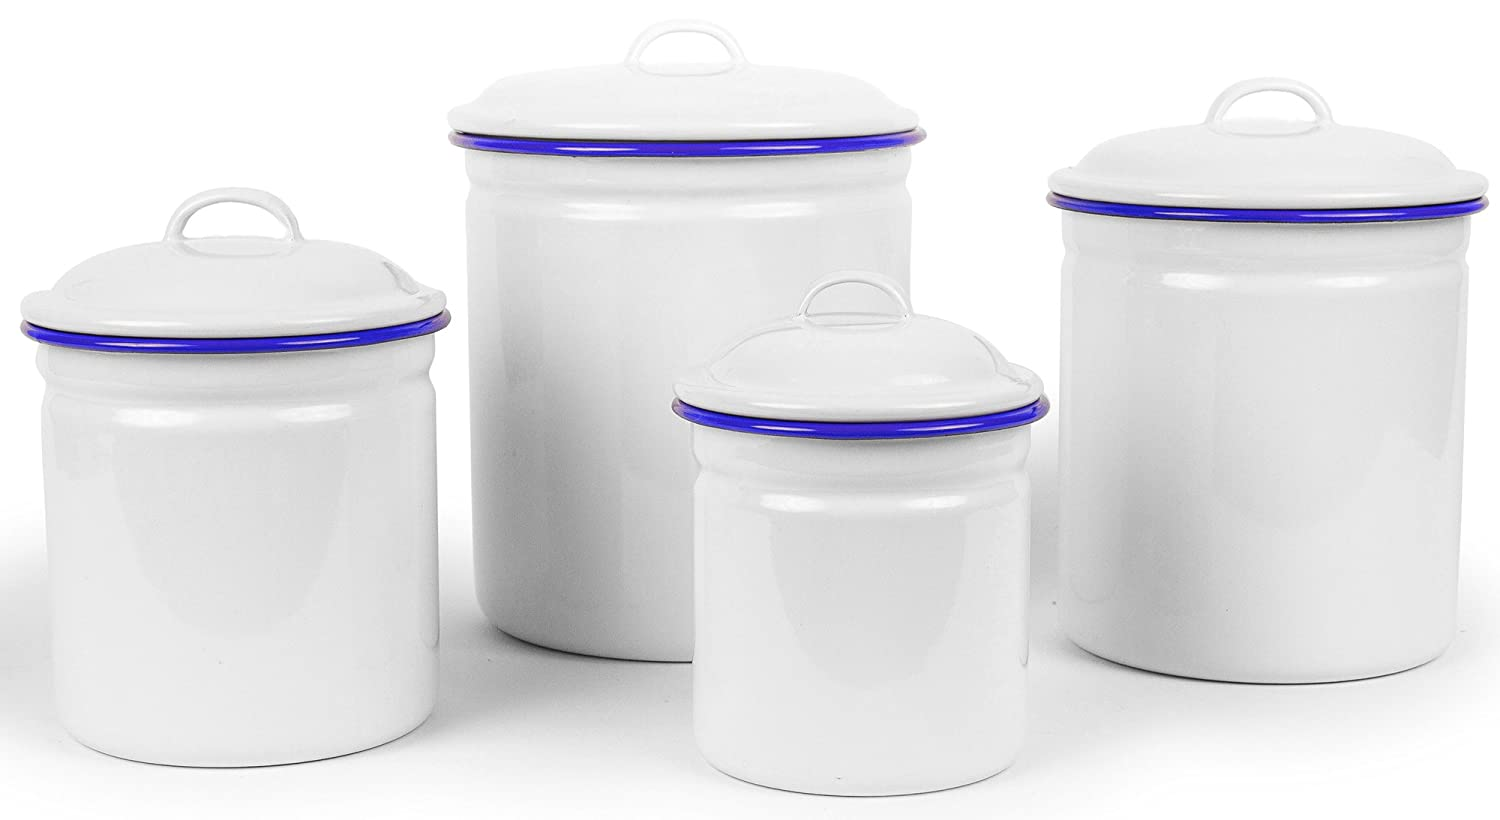 Enamelware 4 Piece Canister Set - Solid White with Blue Rim